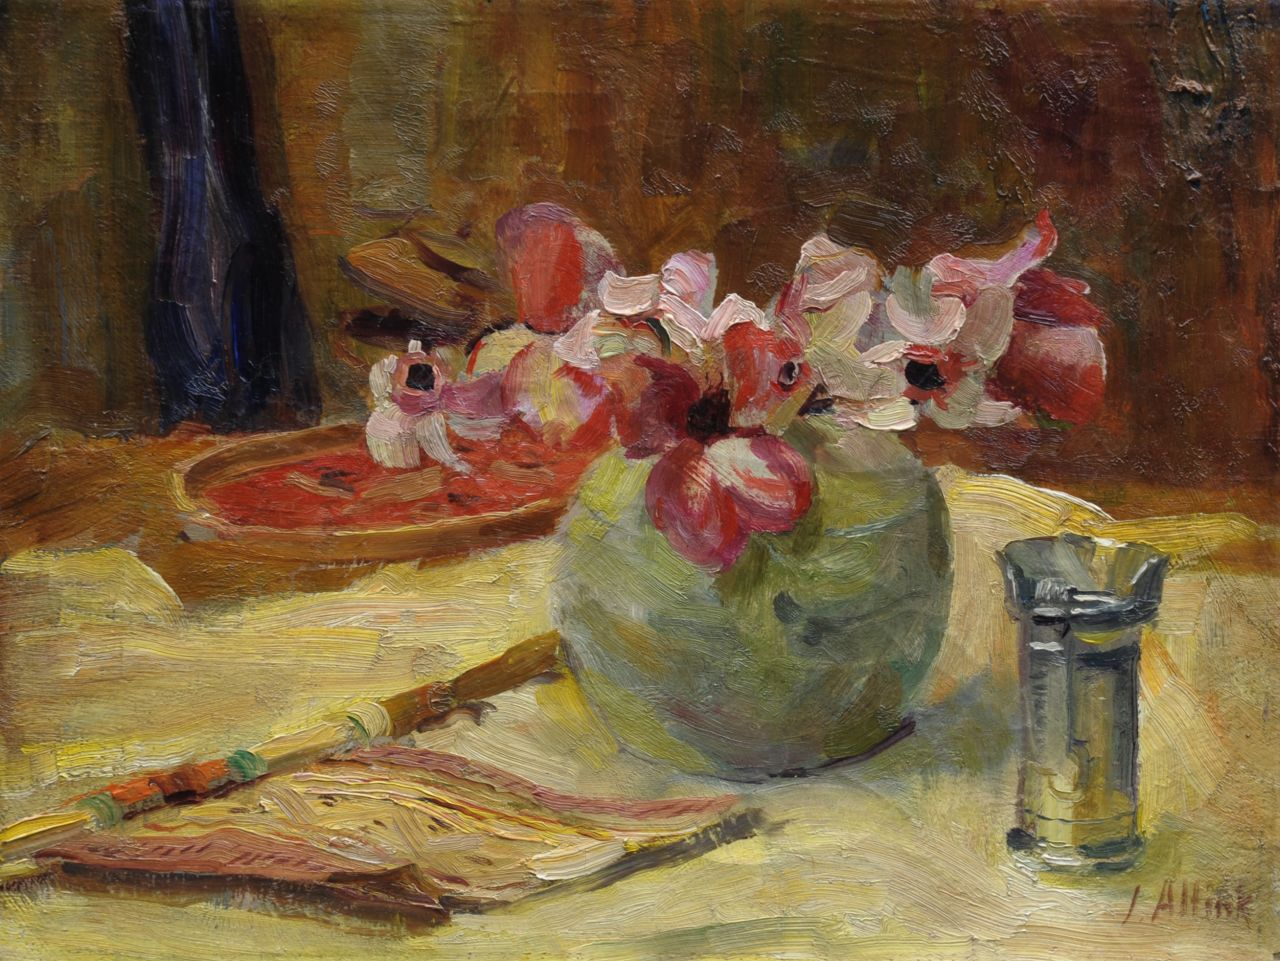 Altink J.  | Jan Altink, A still life with a fan and flowers, oil on canvas 30.2 x 40.1 cm, signed l.r.